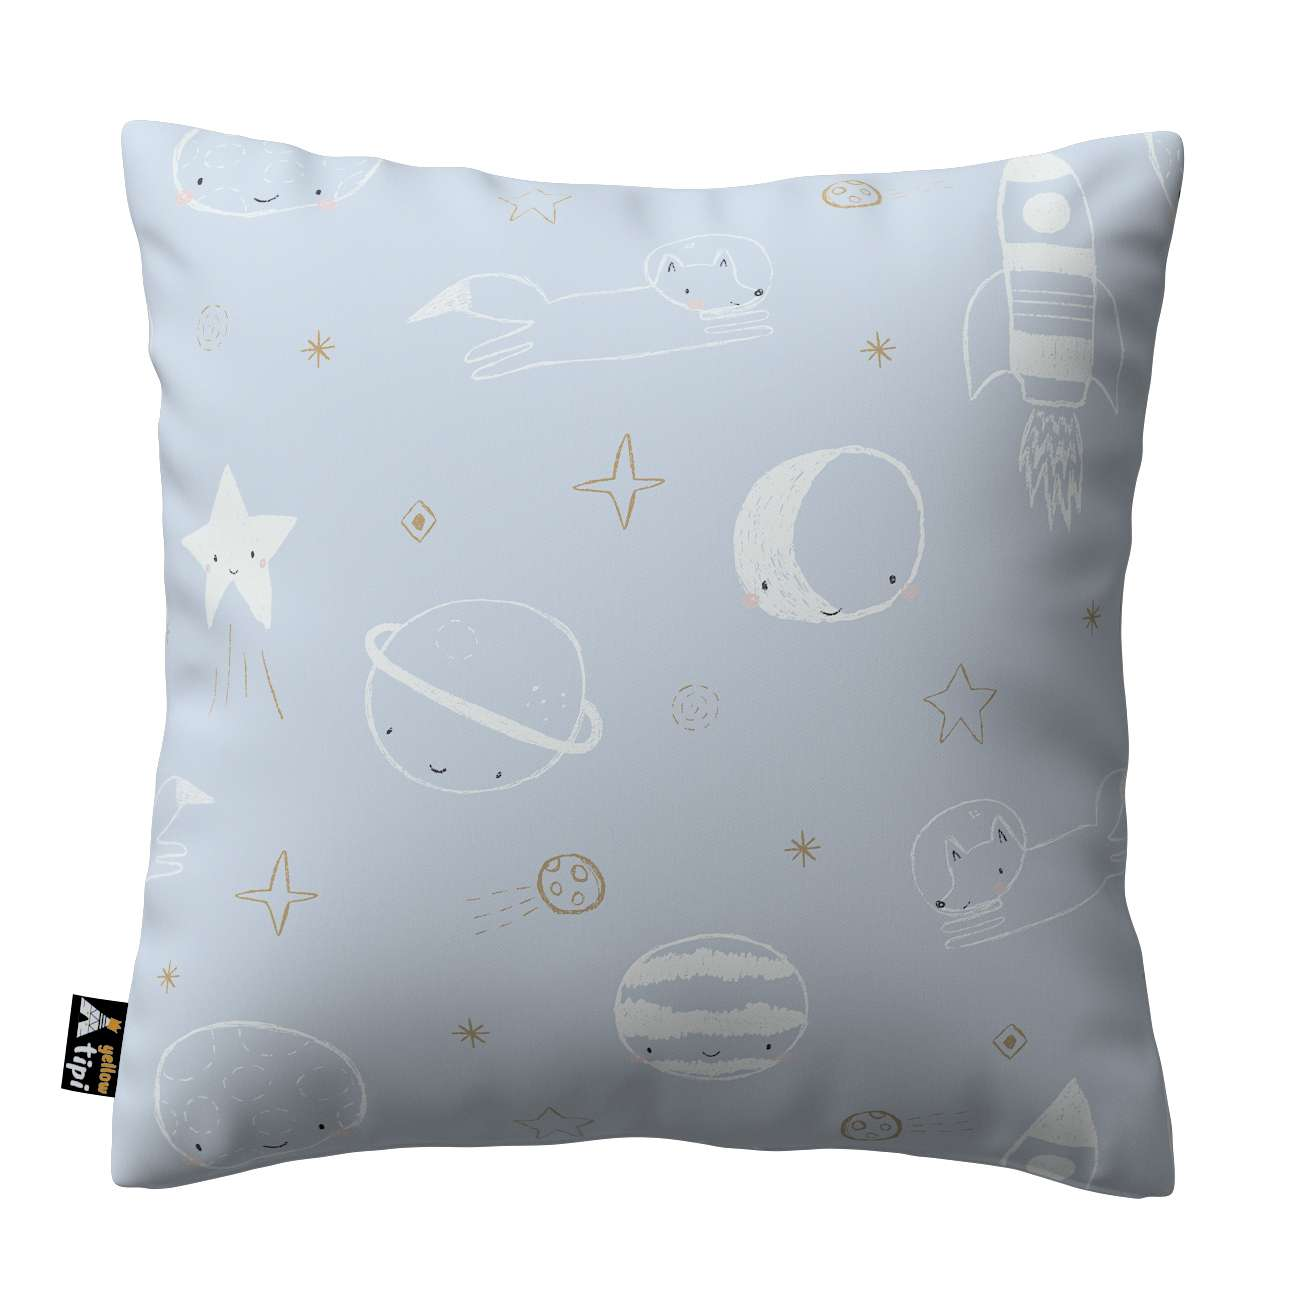 Milly cushion cover in collection Magic Collection, fabric: 500-16